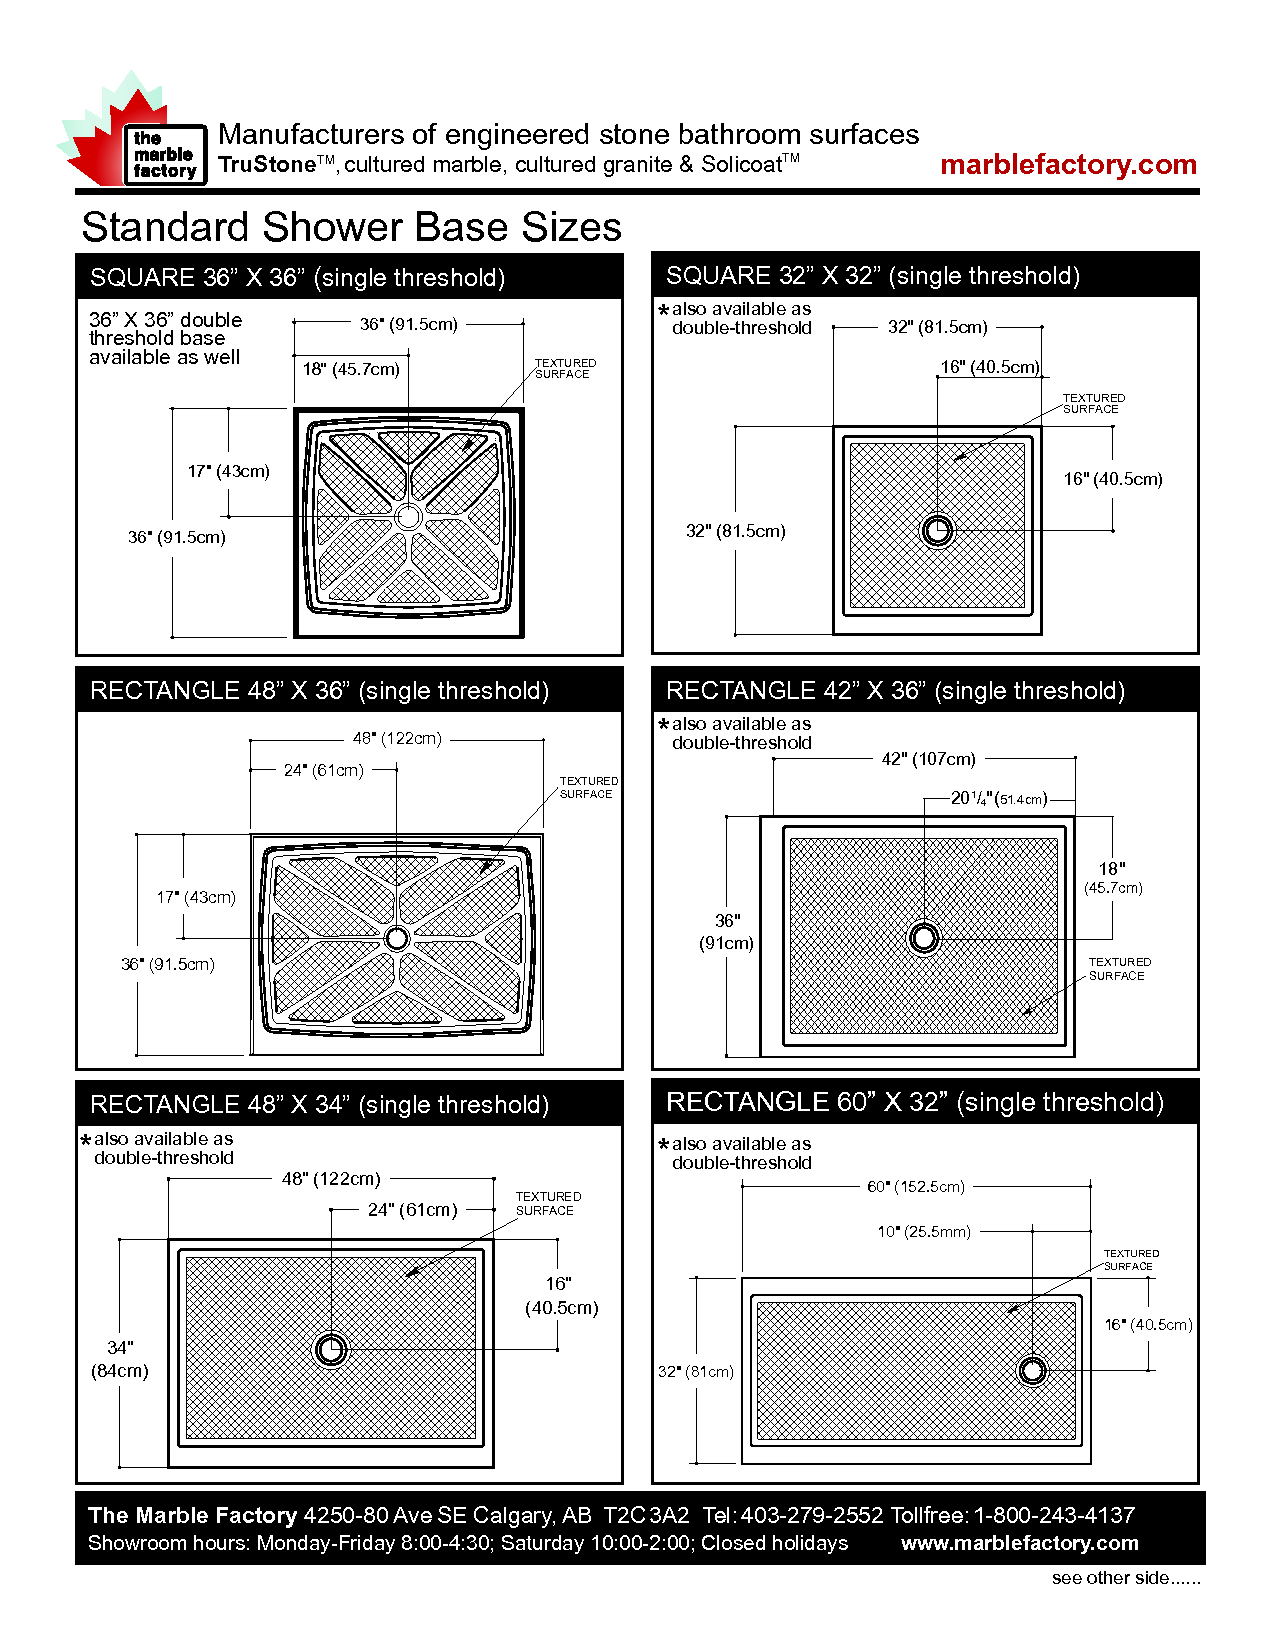 Superieur Standard Shower Base Sizes